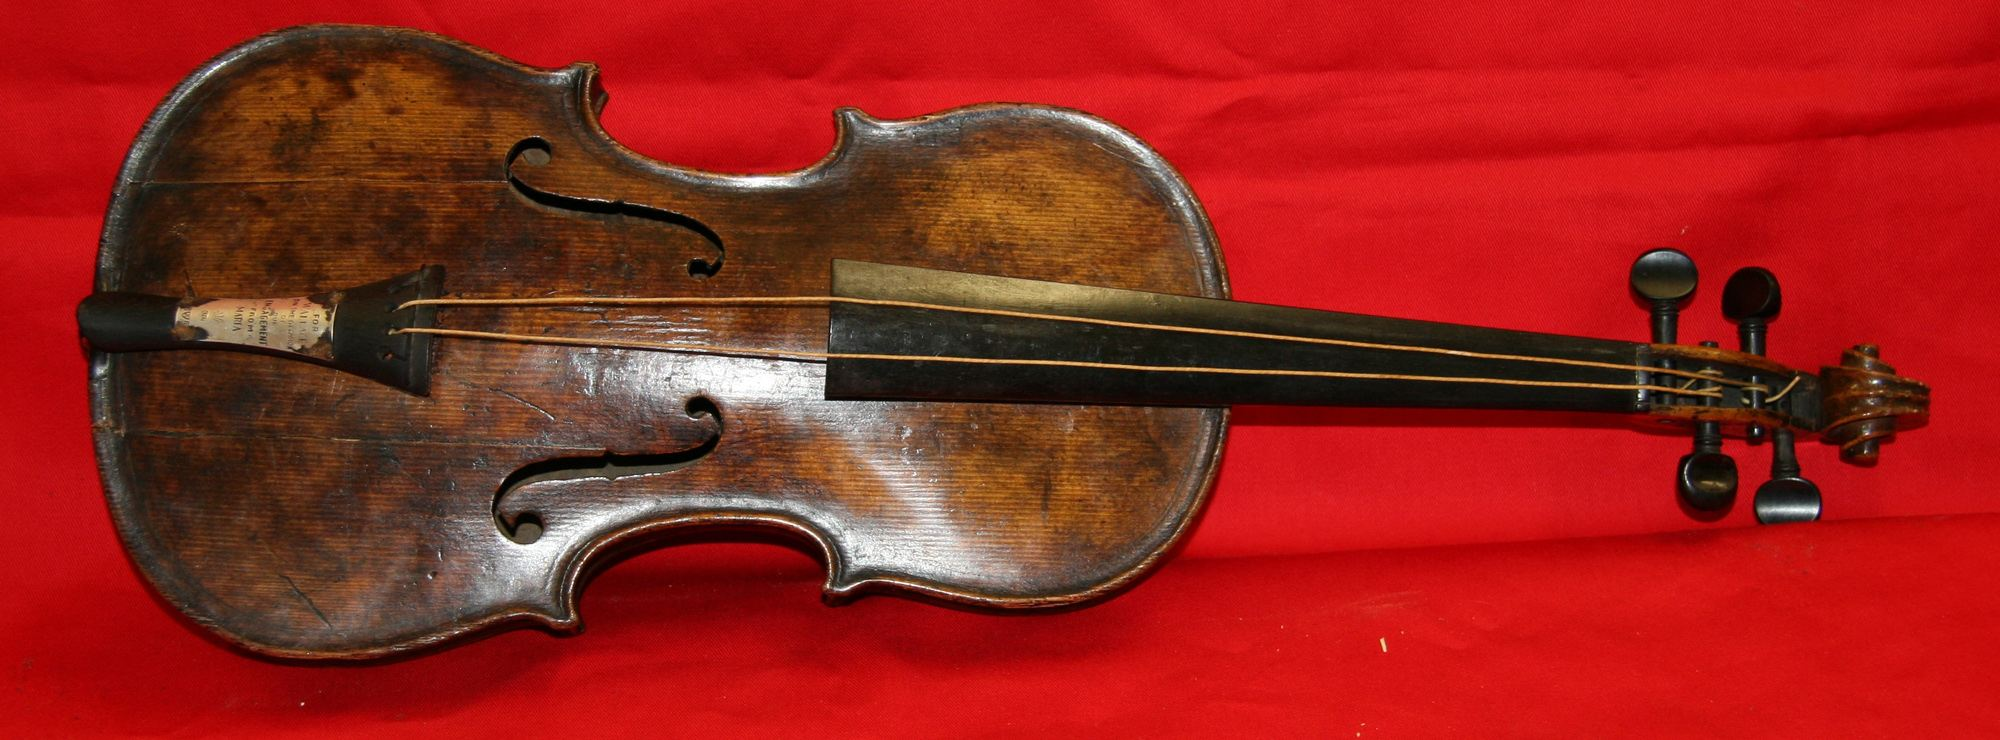 titanic violin found